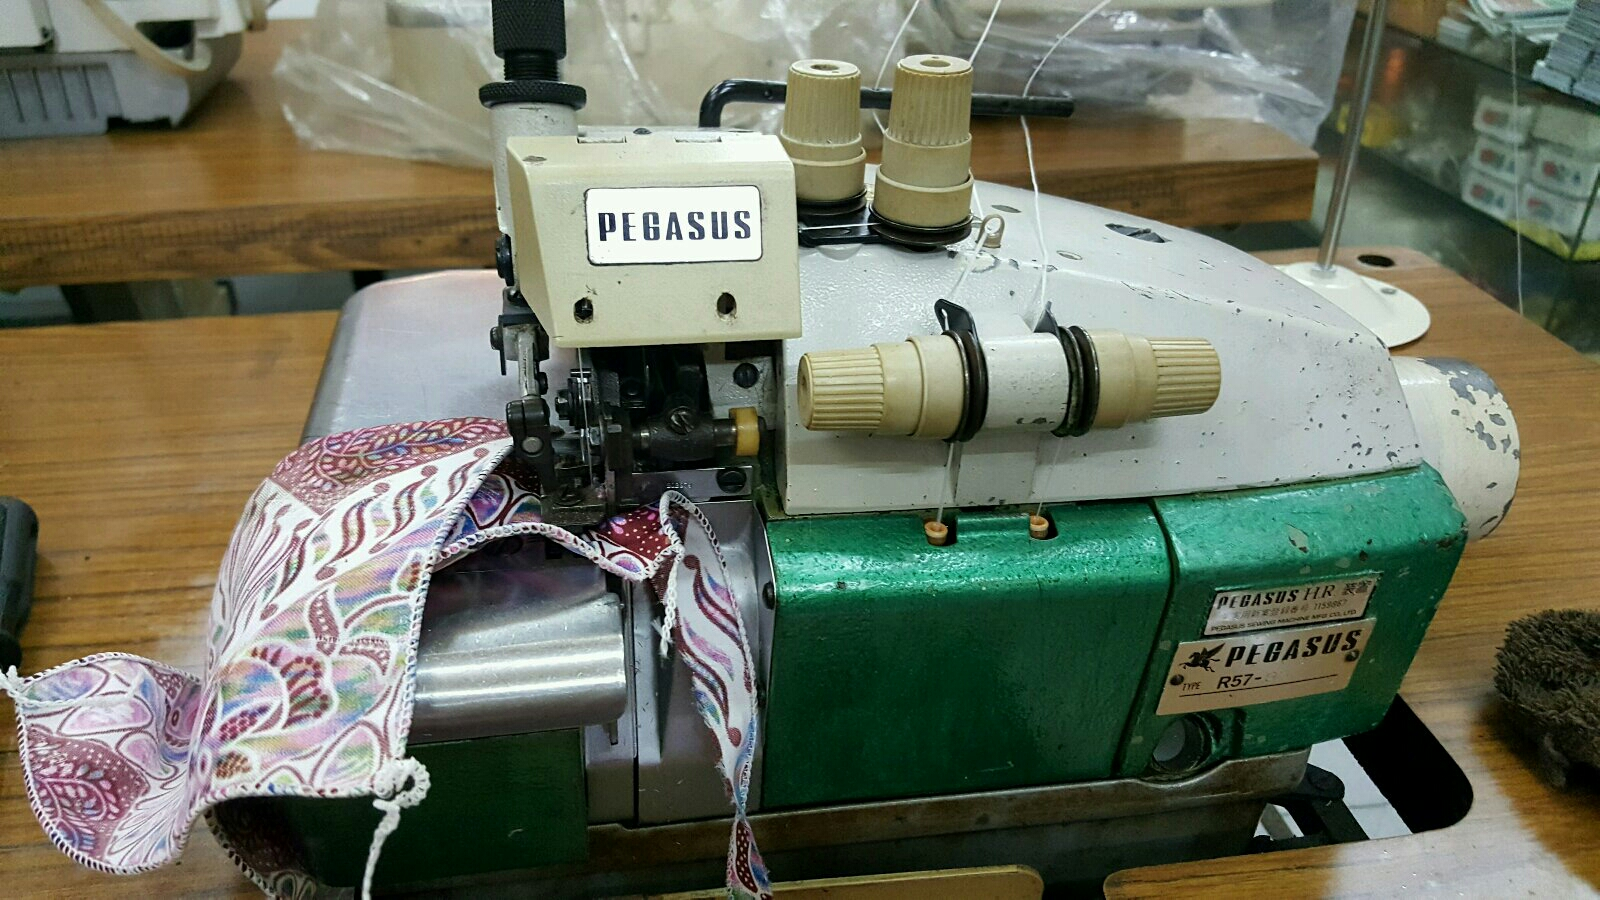 pegasus overlock 2nd machine@@@